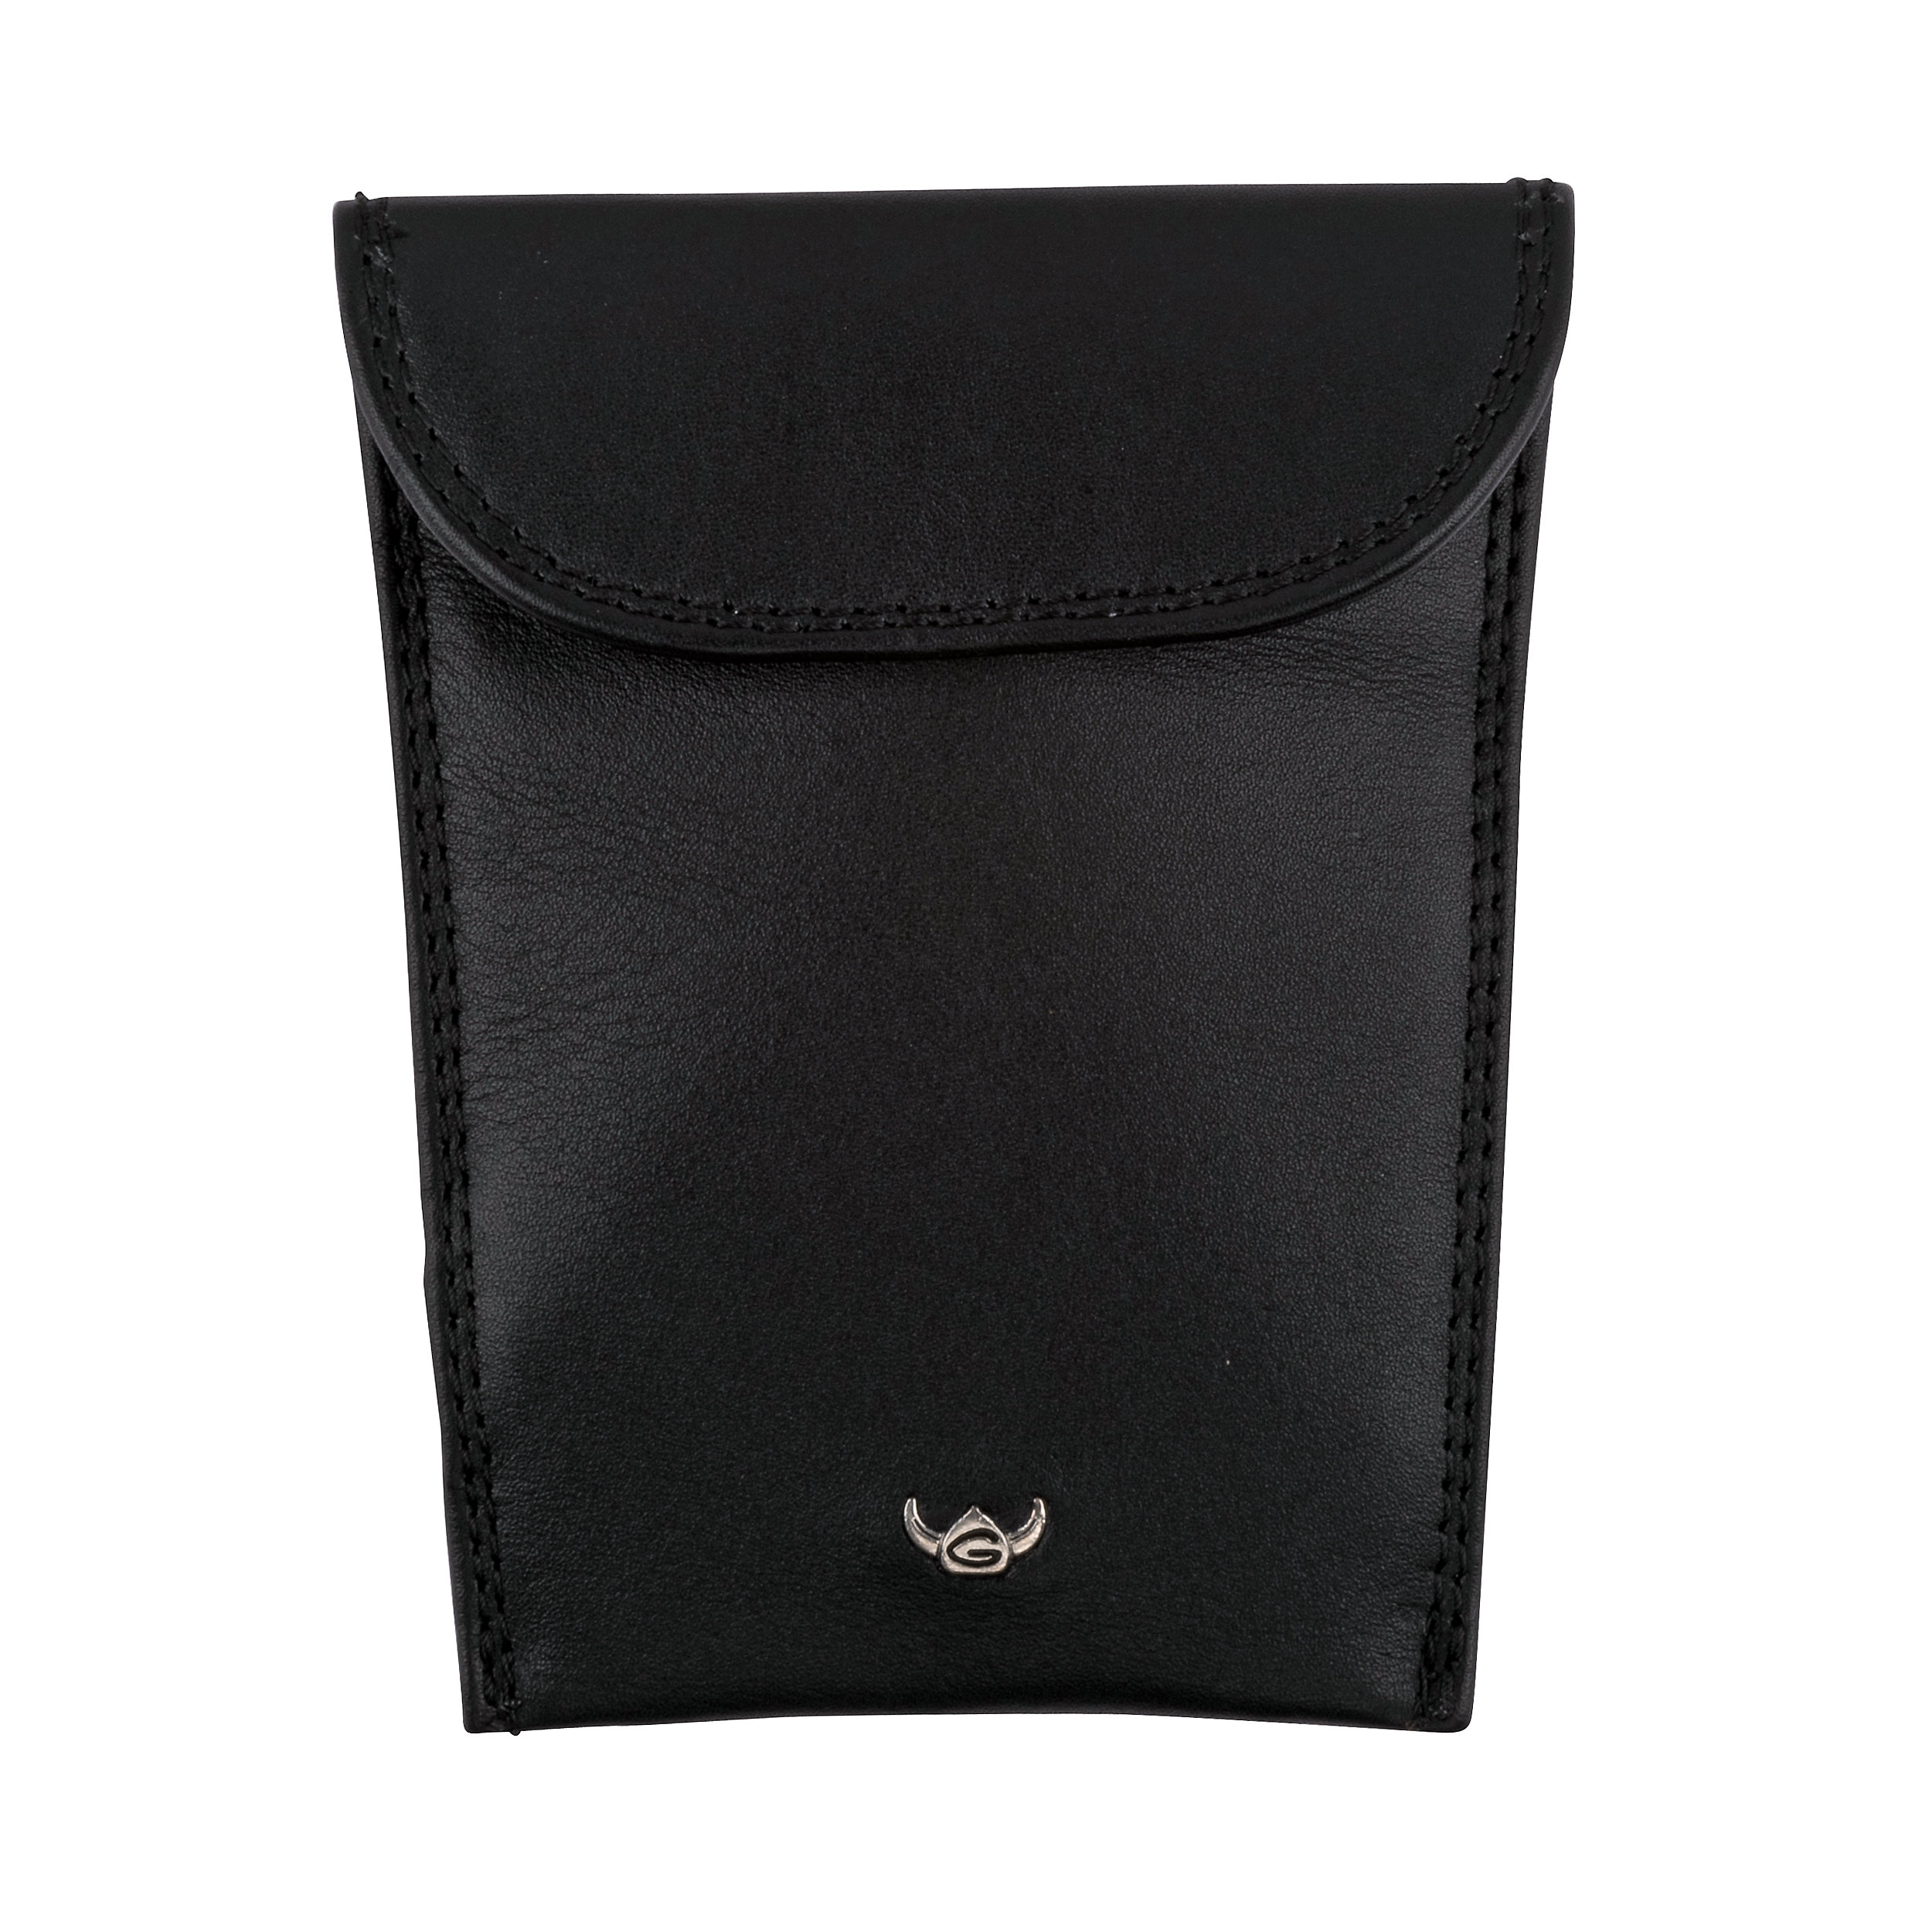 Key Case with push button RFID Polo RFID Protect